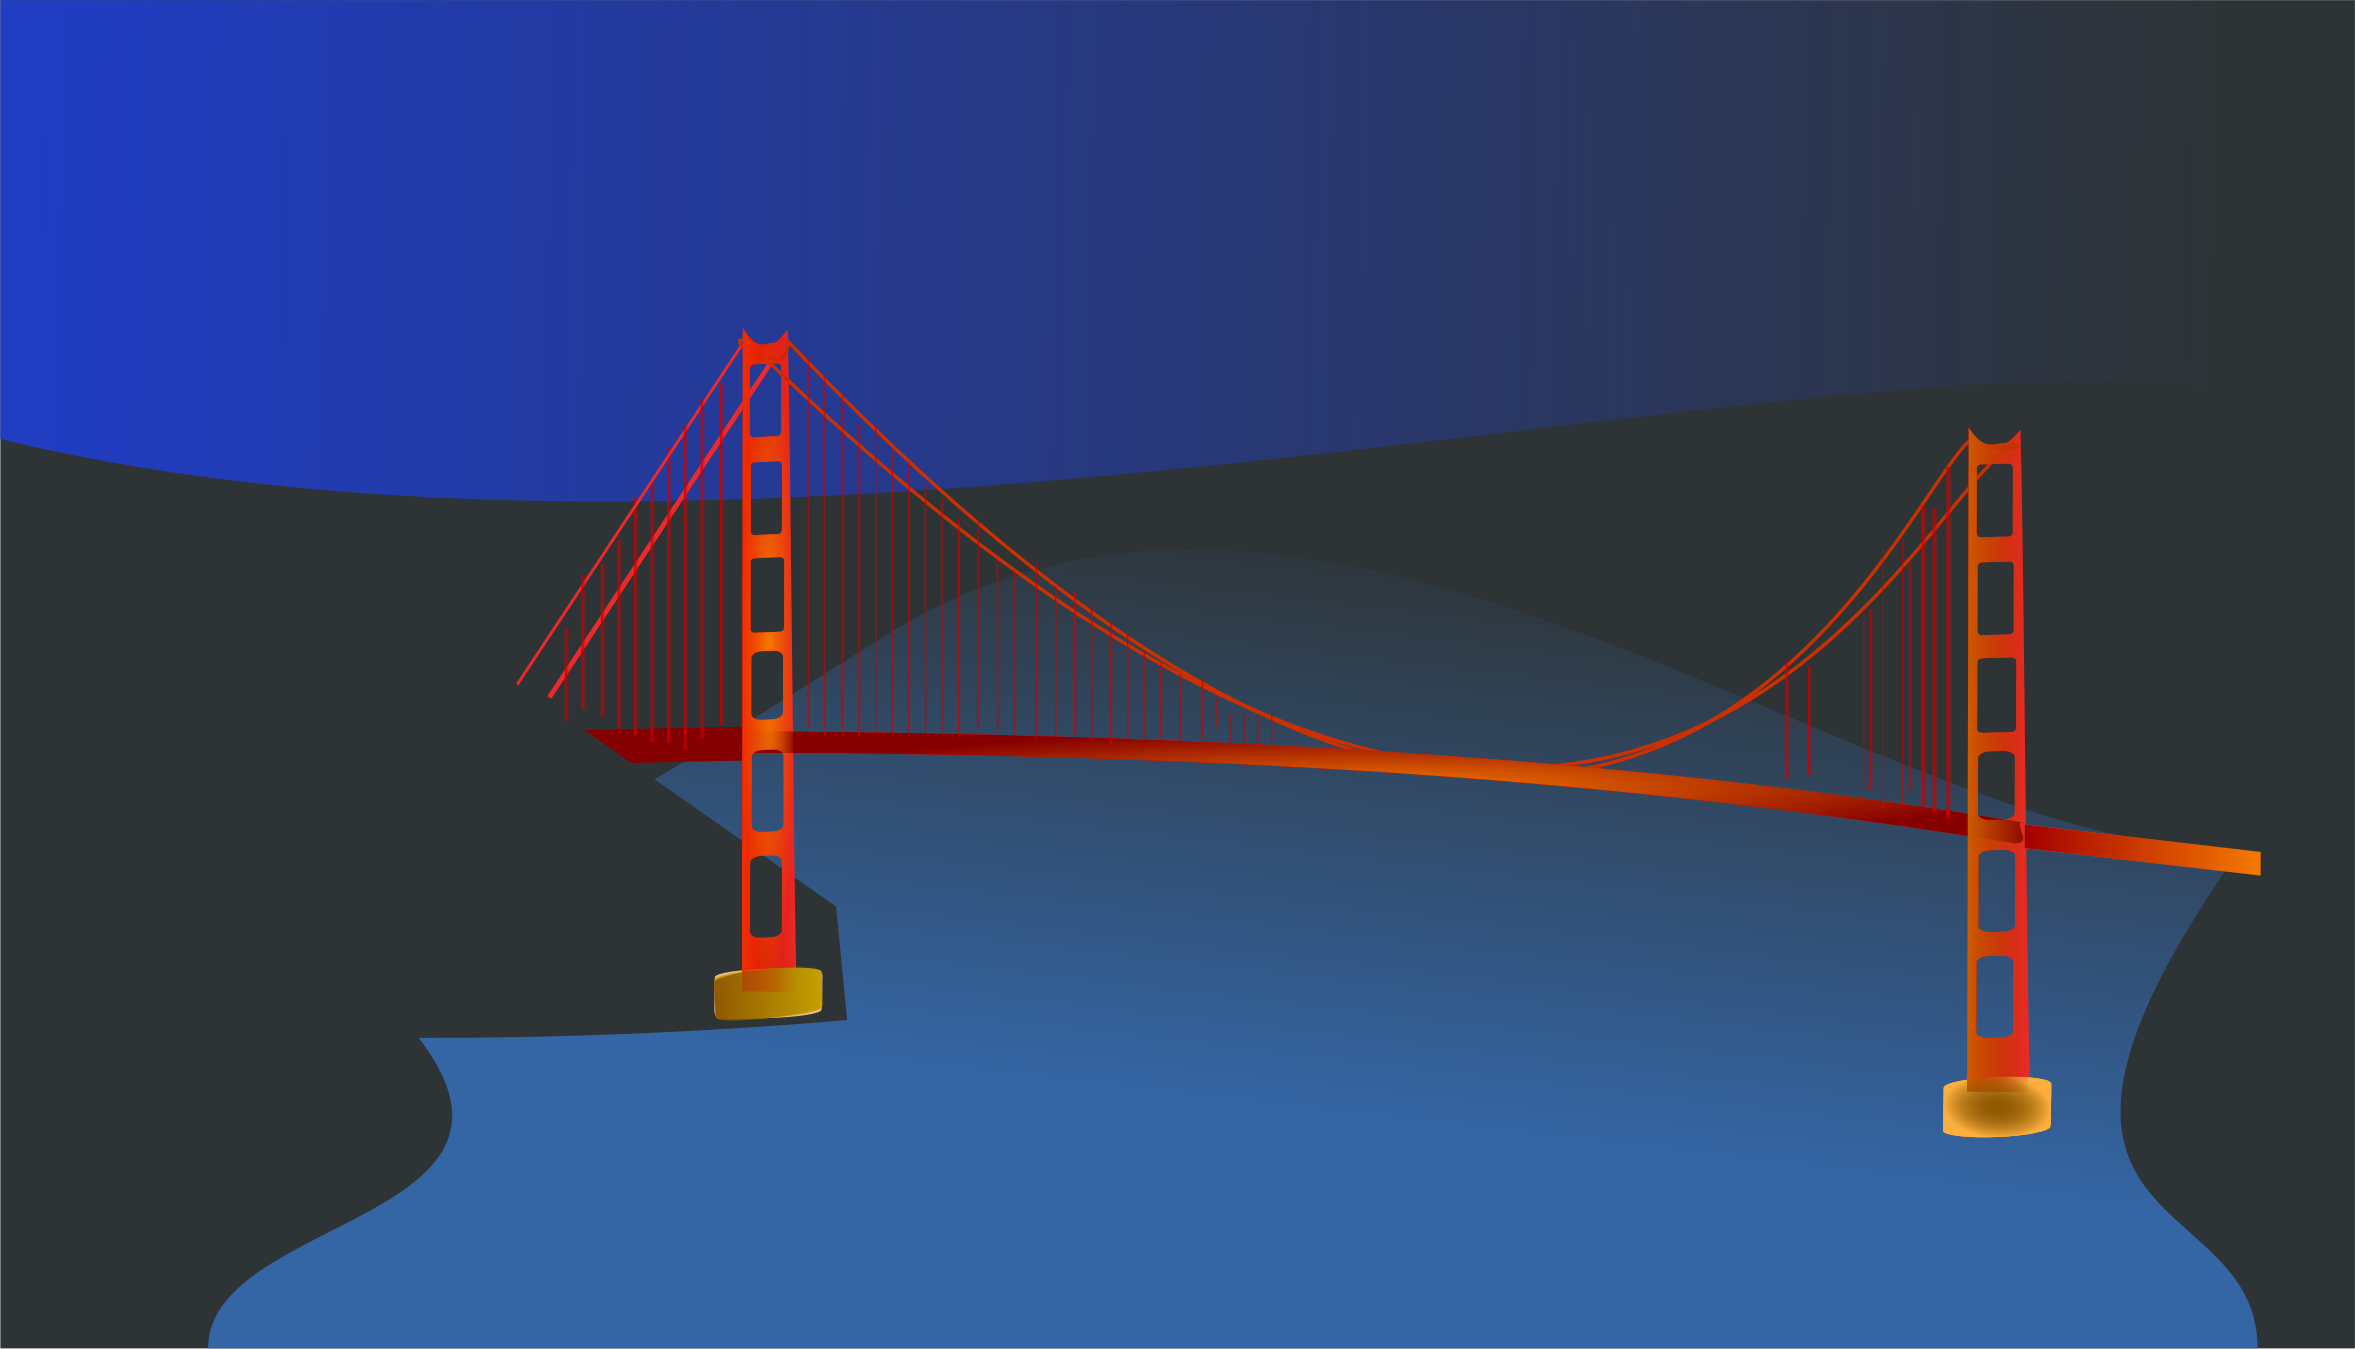 Golden Gate bridge by night by chatard